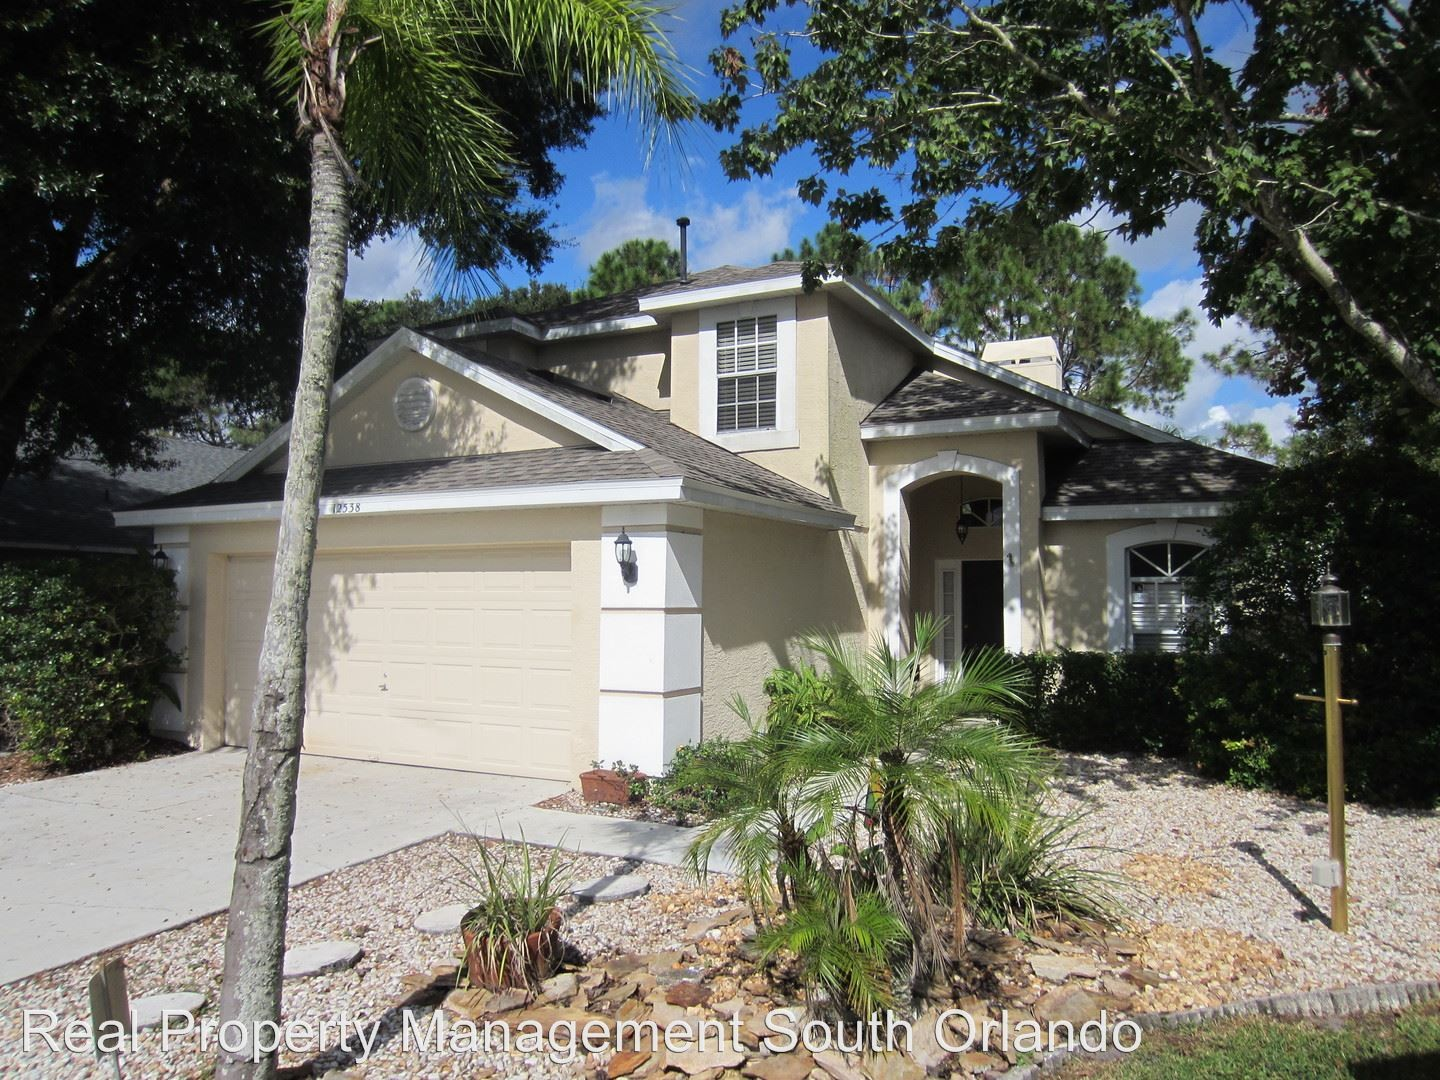 12399 12301 Shady Spring Way 105 Orlando Fl 32828 3 Bedroom Apartment For Rent Padmapper